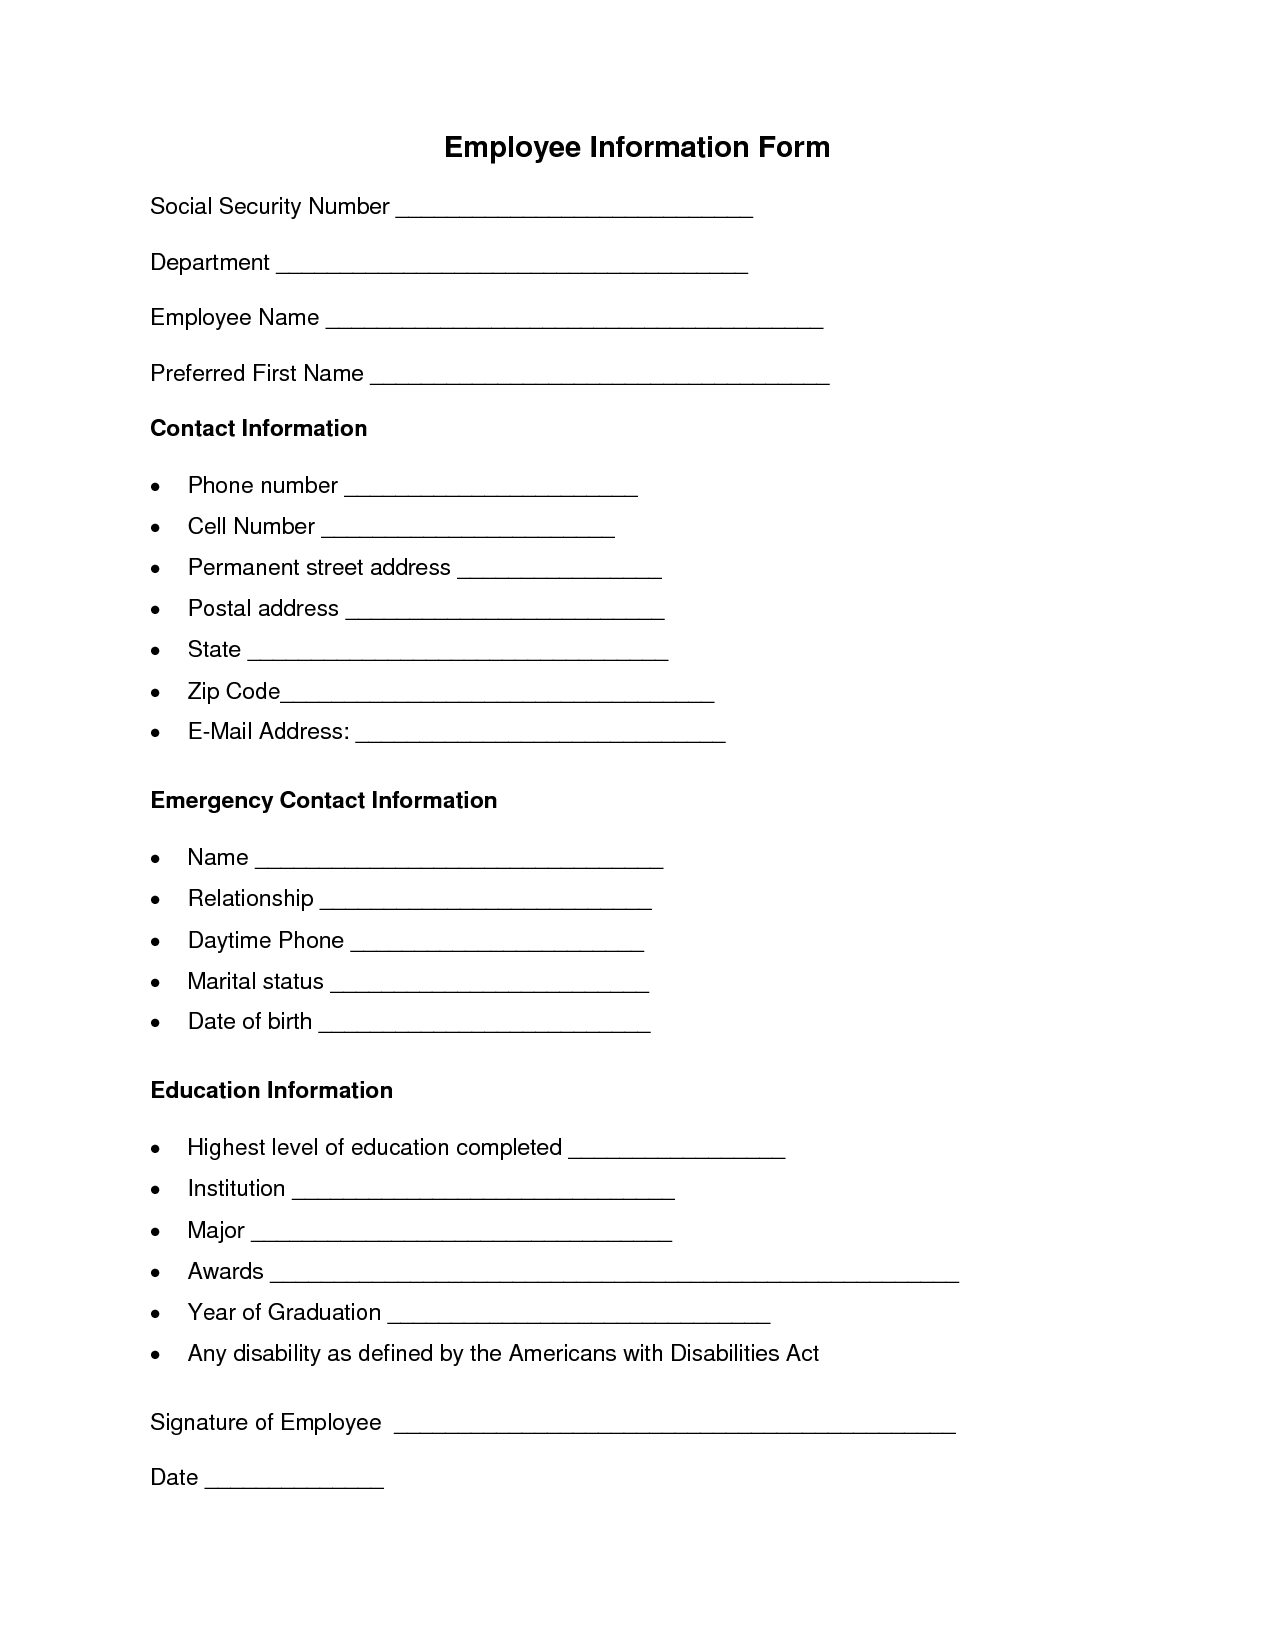 Employee Information Form   Pinteres